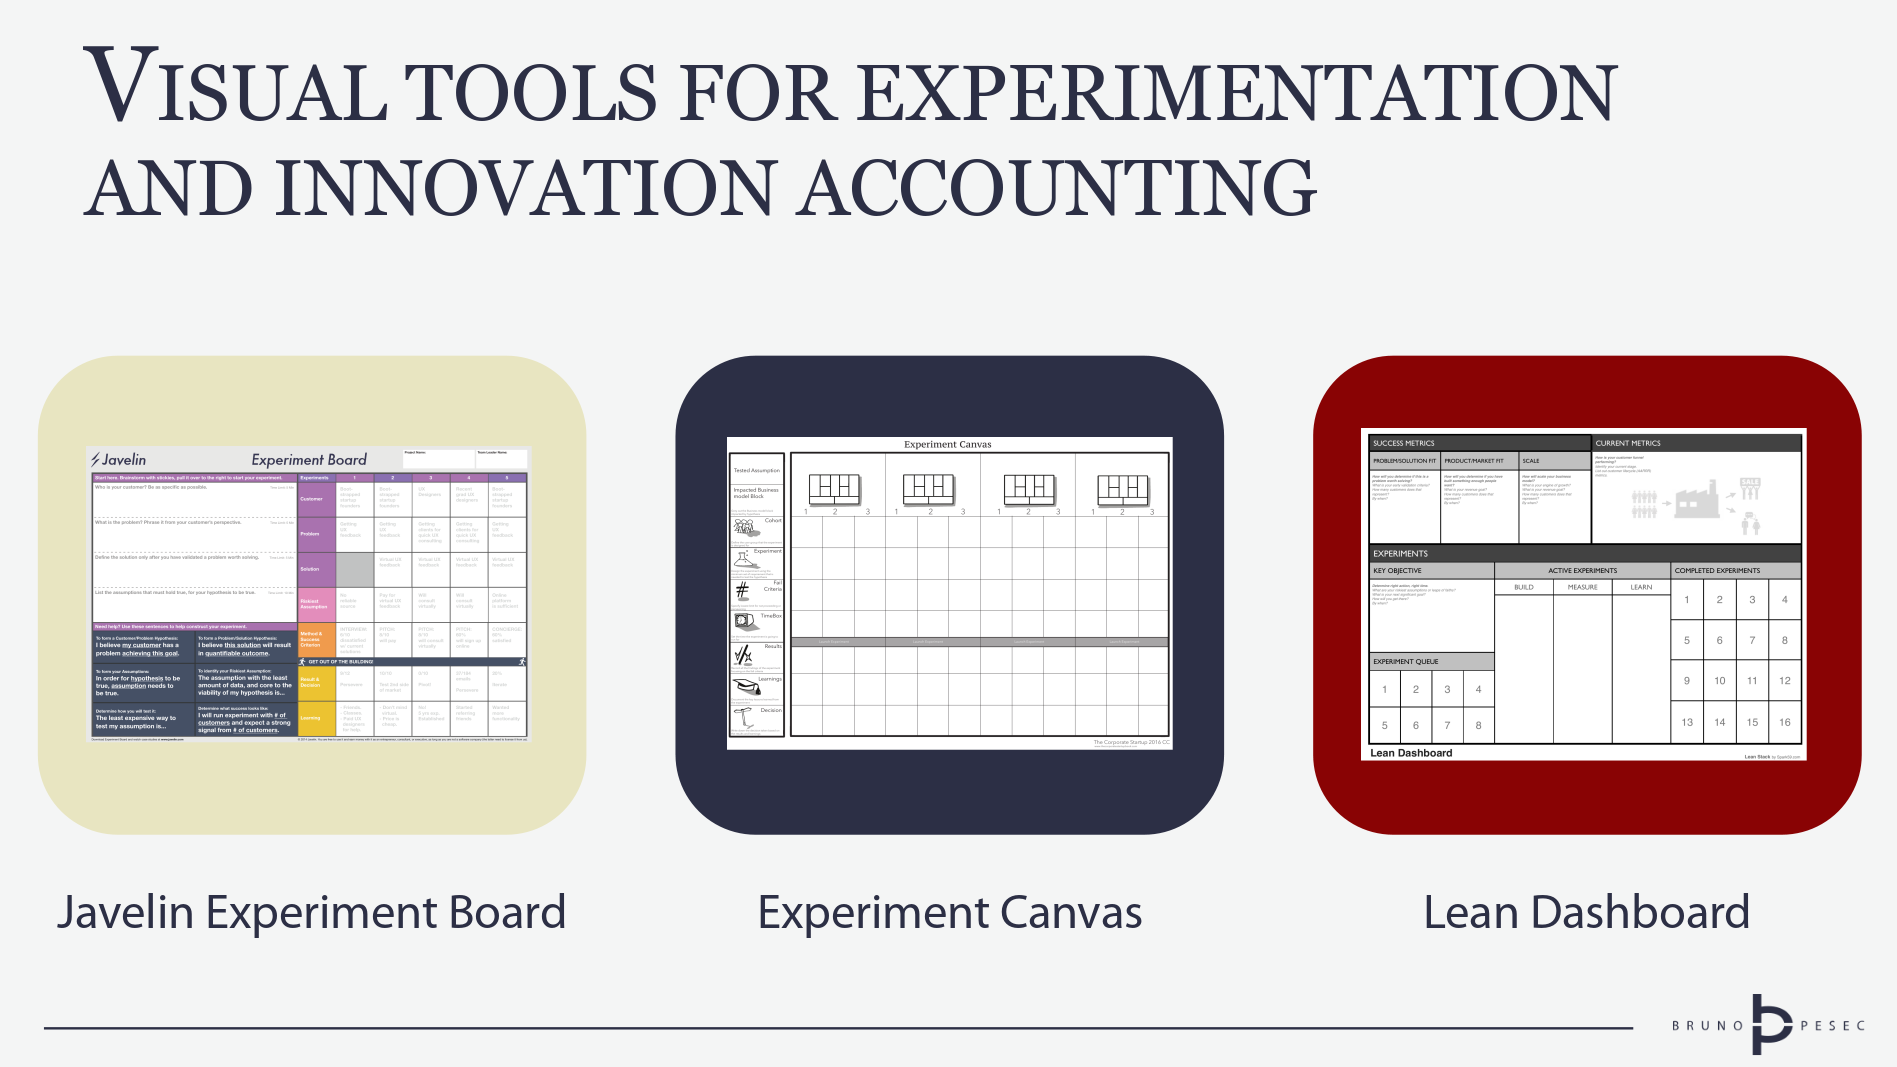 Visual tools for experimentation and innovation accounting